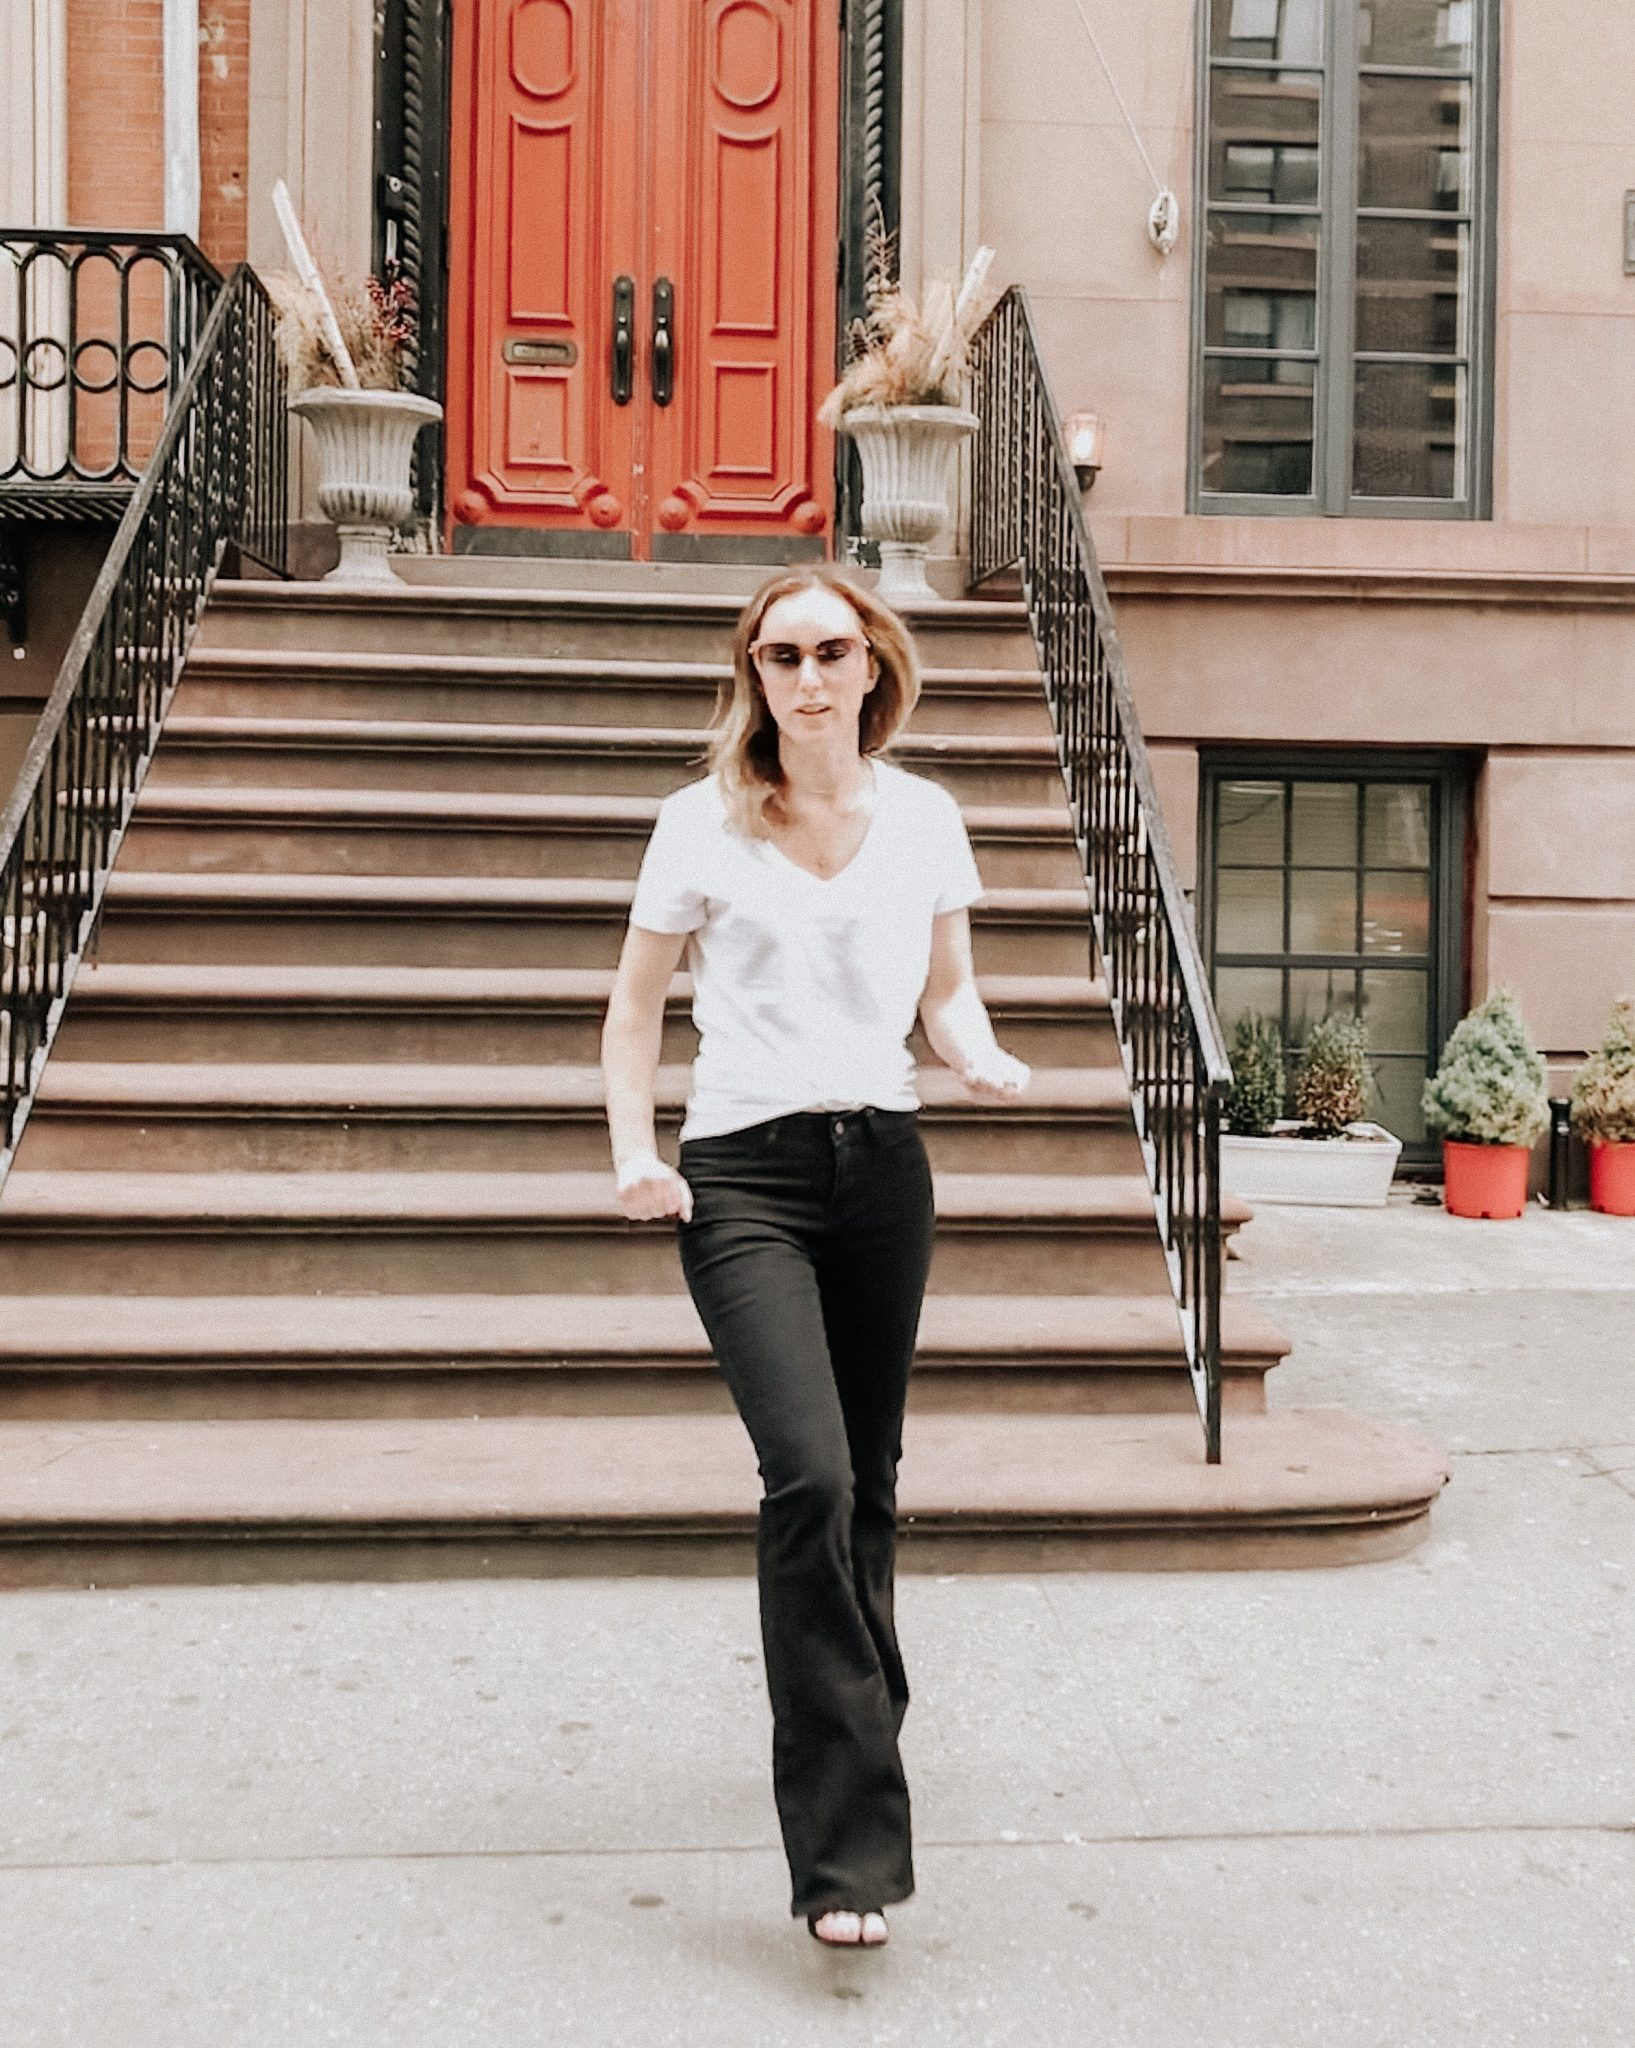 City fun in flares | Daily Splendor Life and Style Blog || Flare jeans, faux leather jacket, wide brim hat #flarejeans #blackjeans #citystyle #NYCfashion #bloggerstyle #casualchic